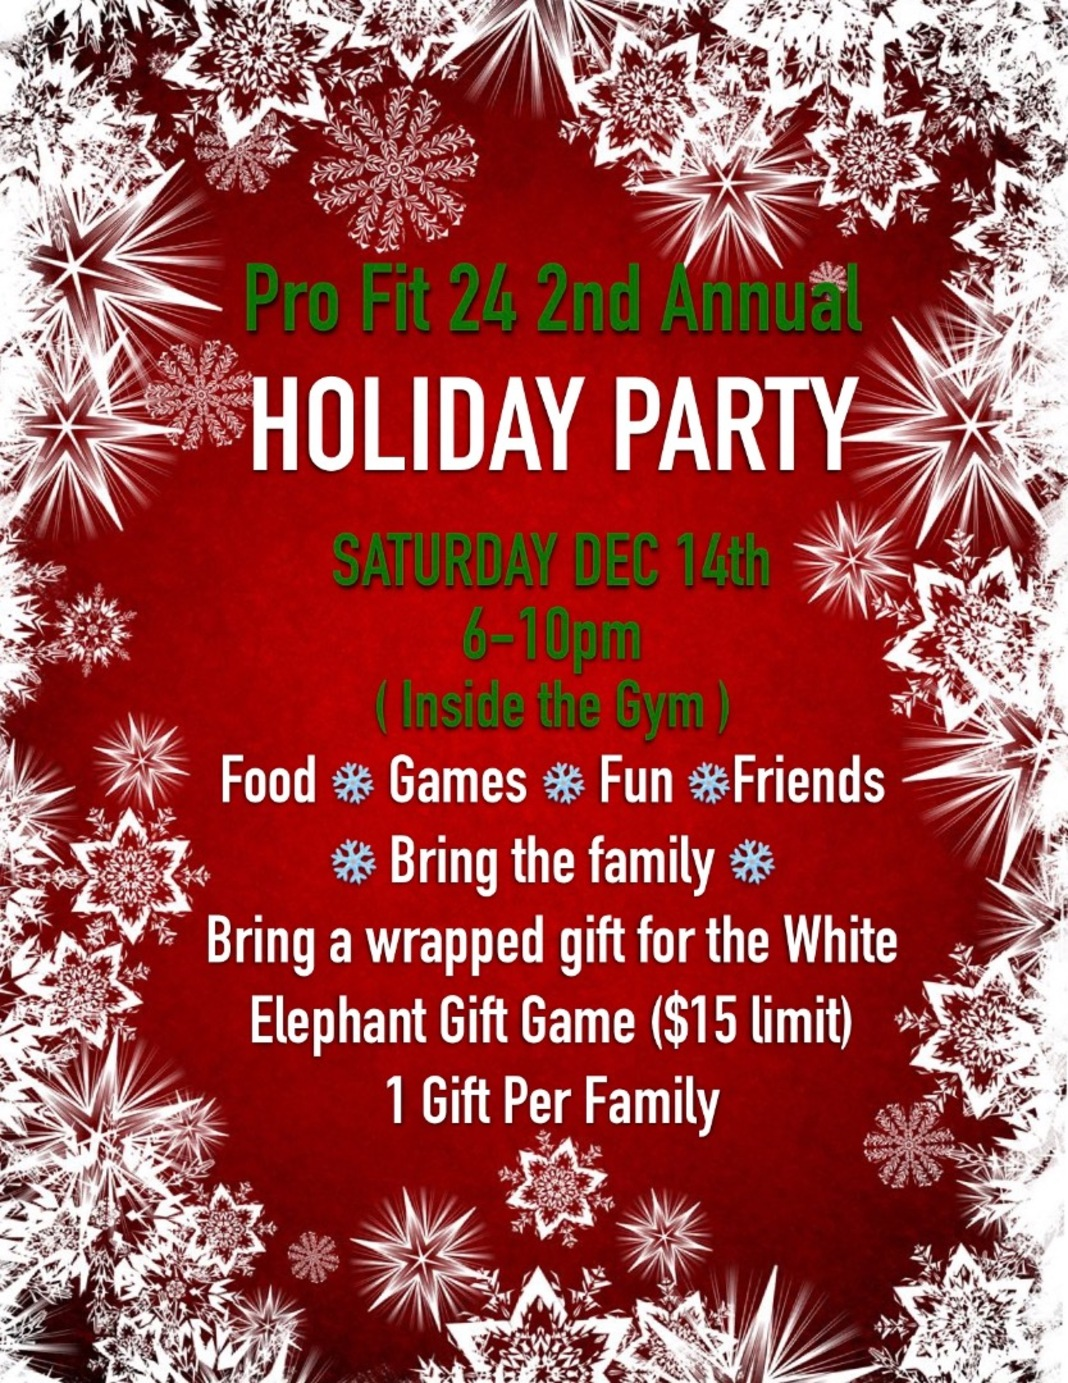 🎄Pro Fit 24 Holiday Party THIS Saturday 6-10pm🎄 Image